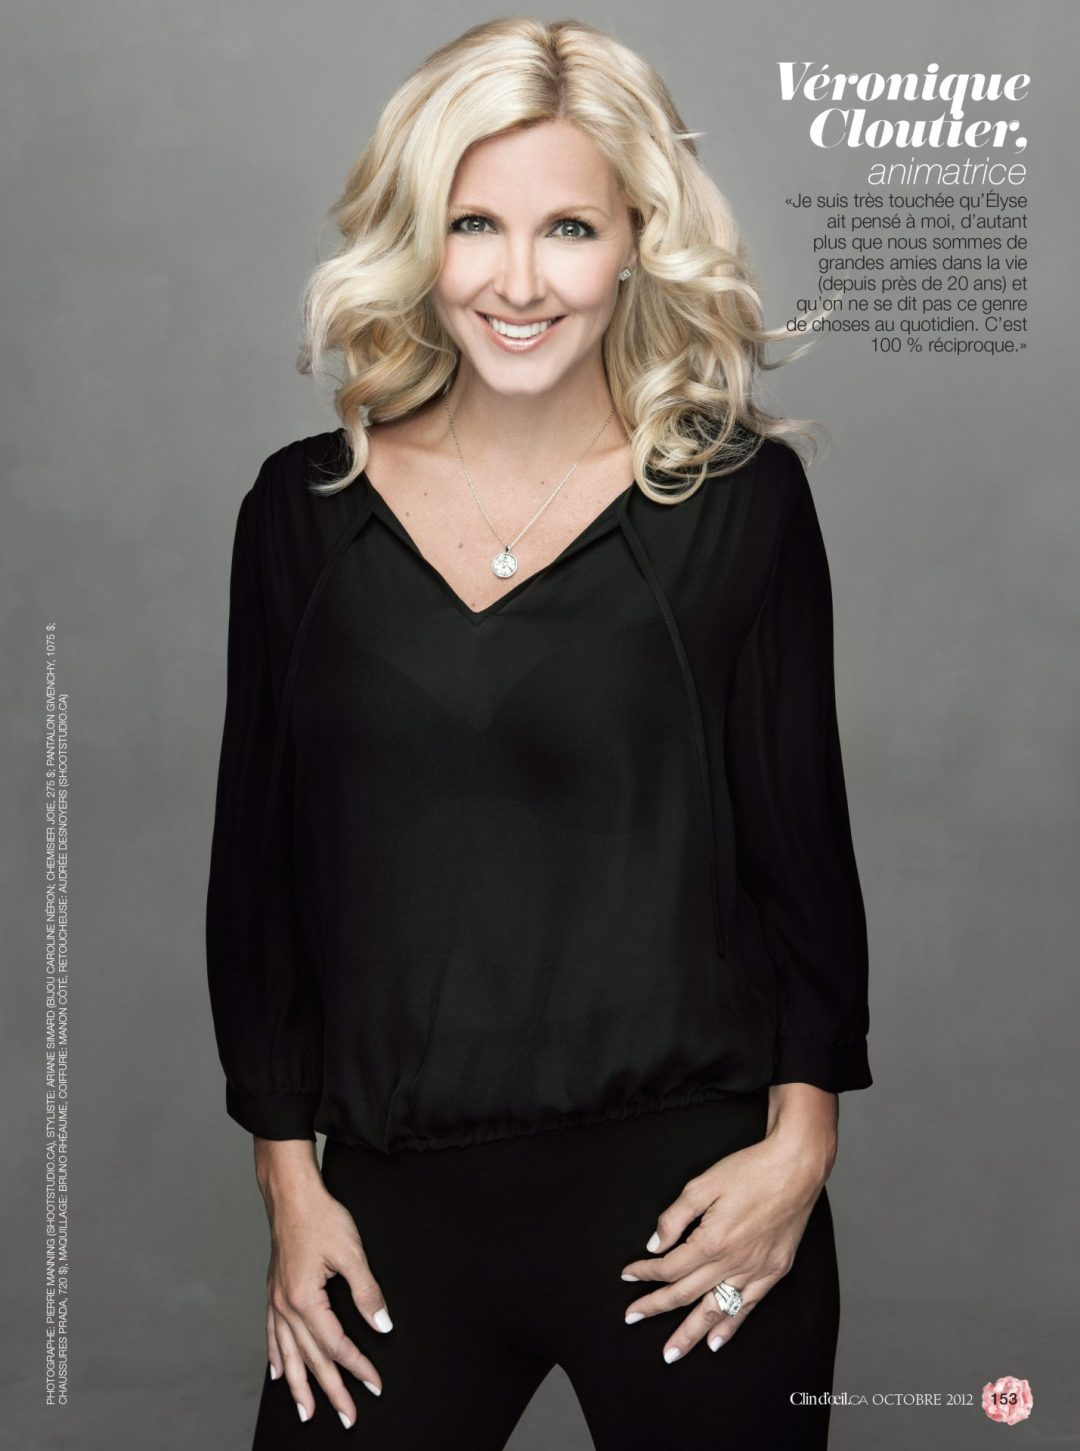 Veronique Cloutier Magazine Clin Doeil 2012 par Ariane Simard